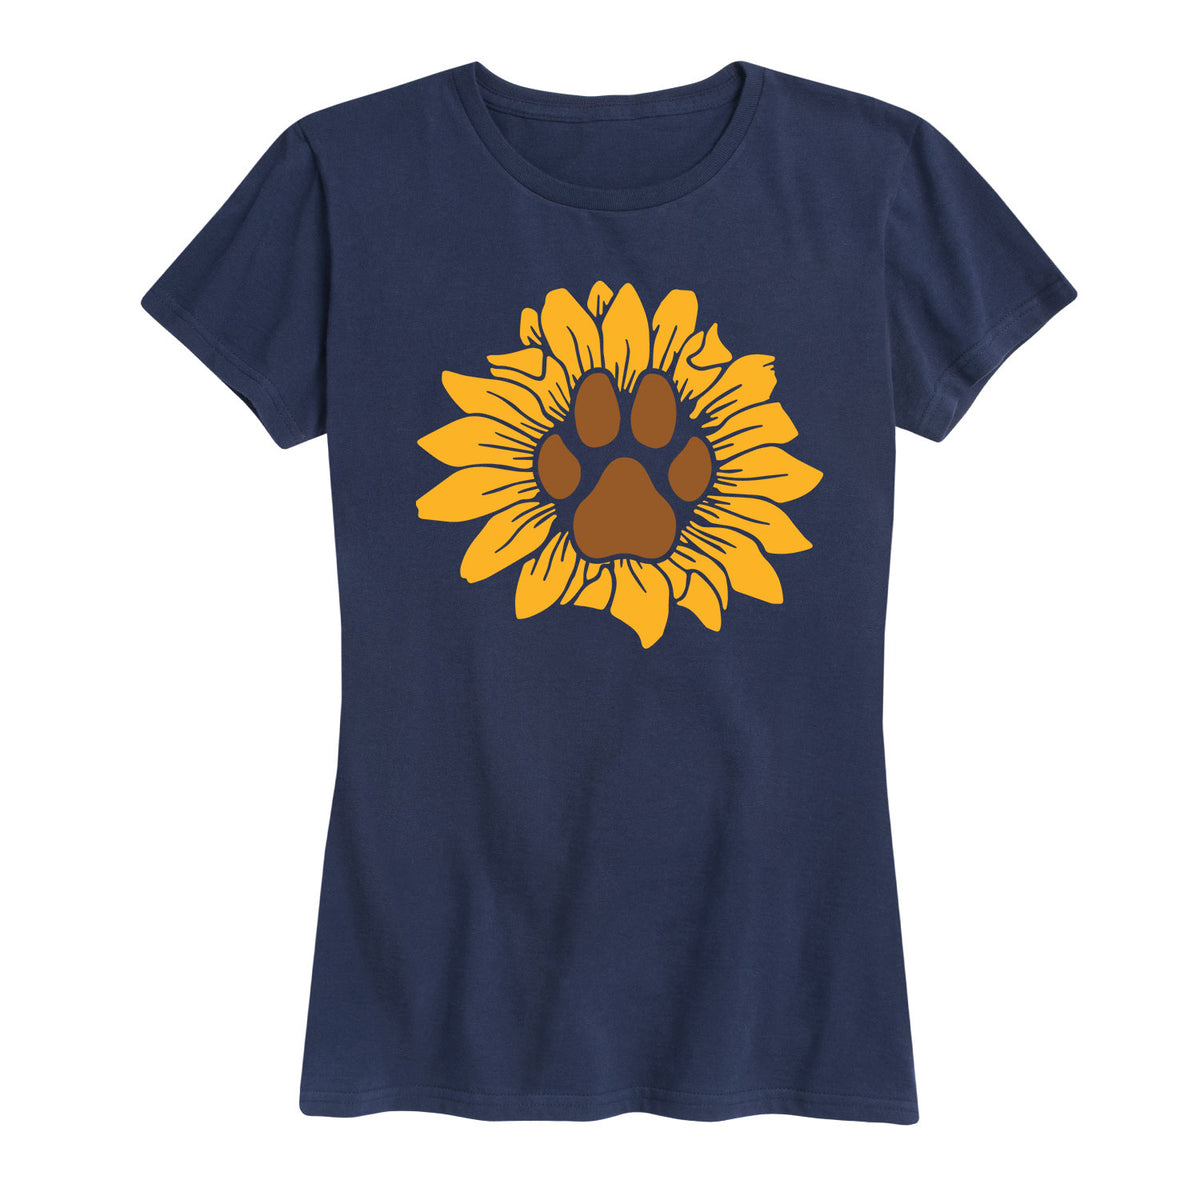 Sunflower Dog Paw-Women's Short Sleeve T-Shirt